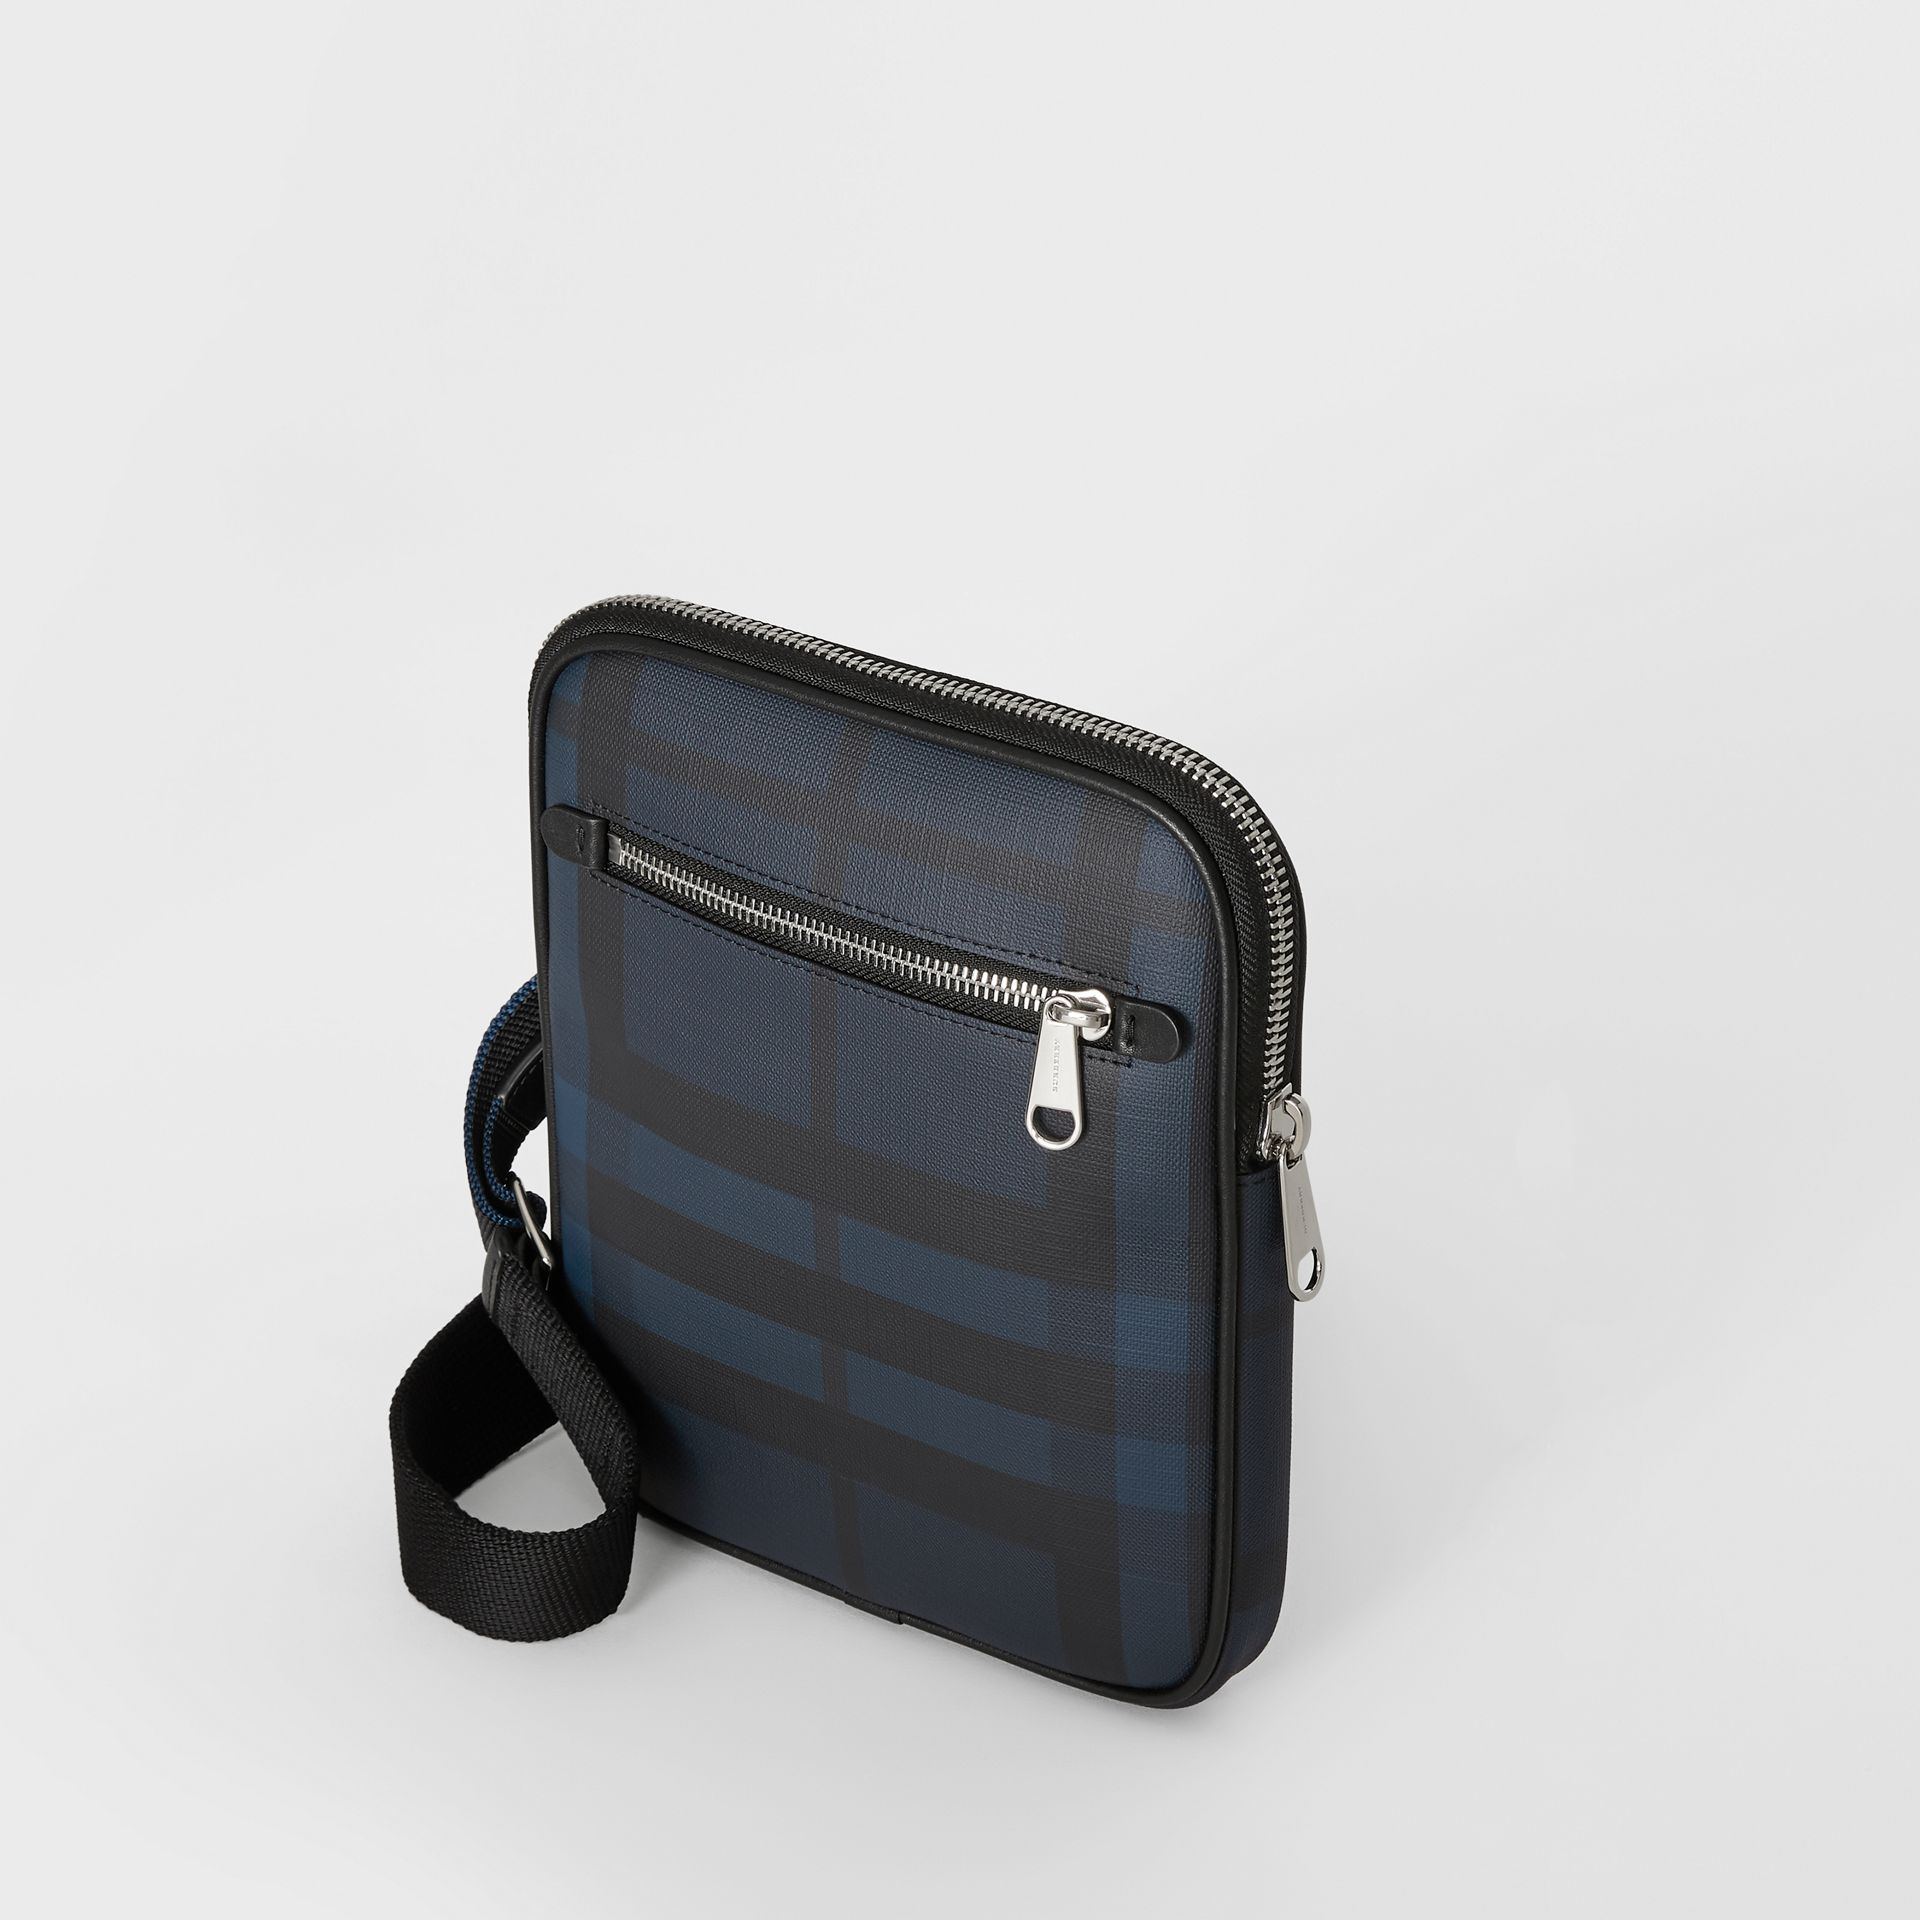 Slim London Check Crossbody Bag in Navy/black - Men | Burberry United Kingdom - gallery image 4